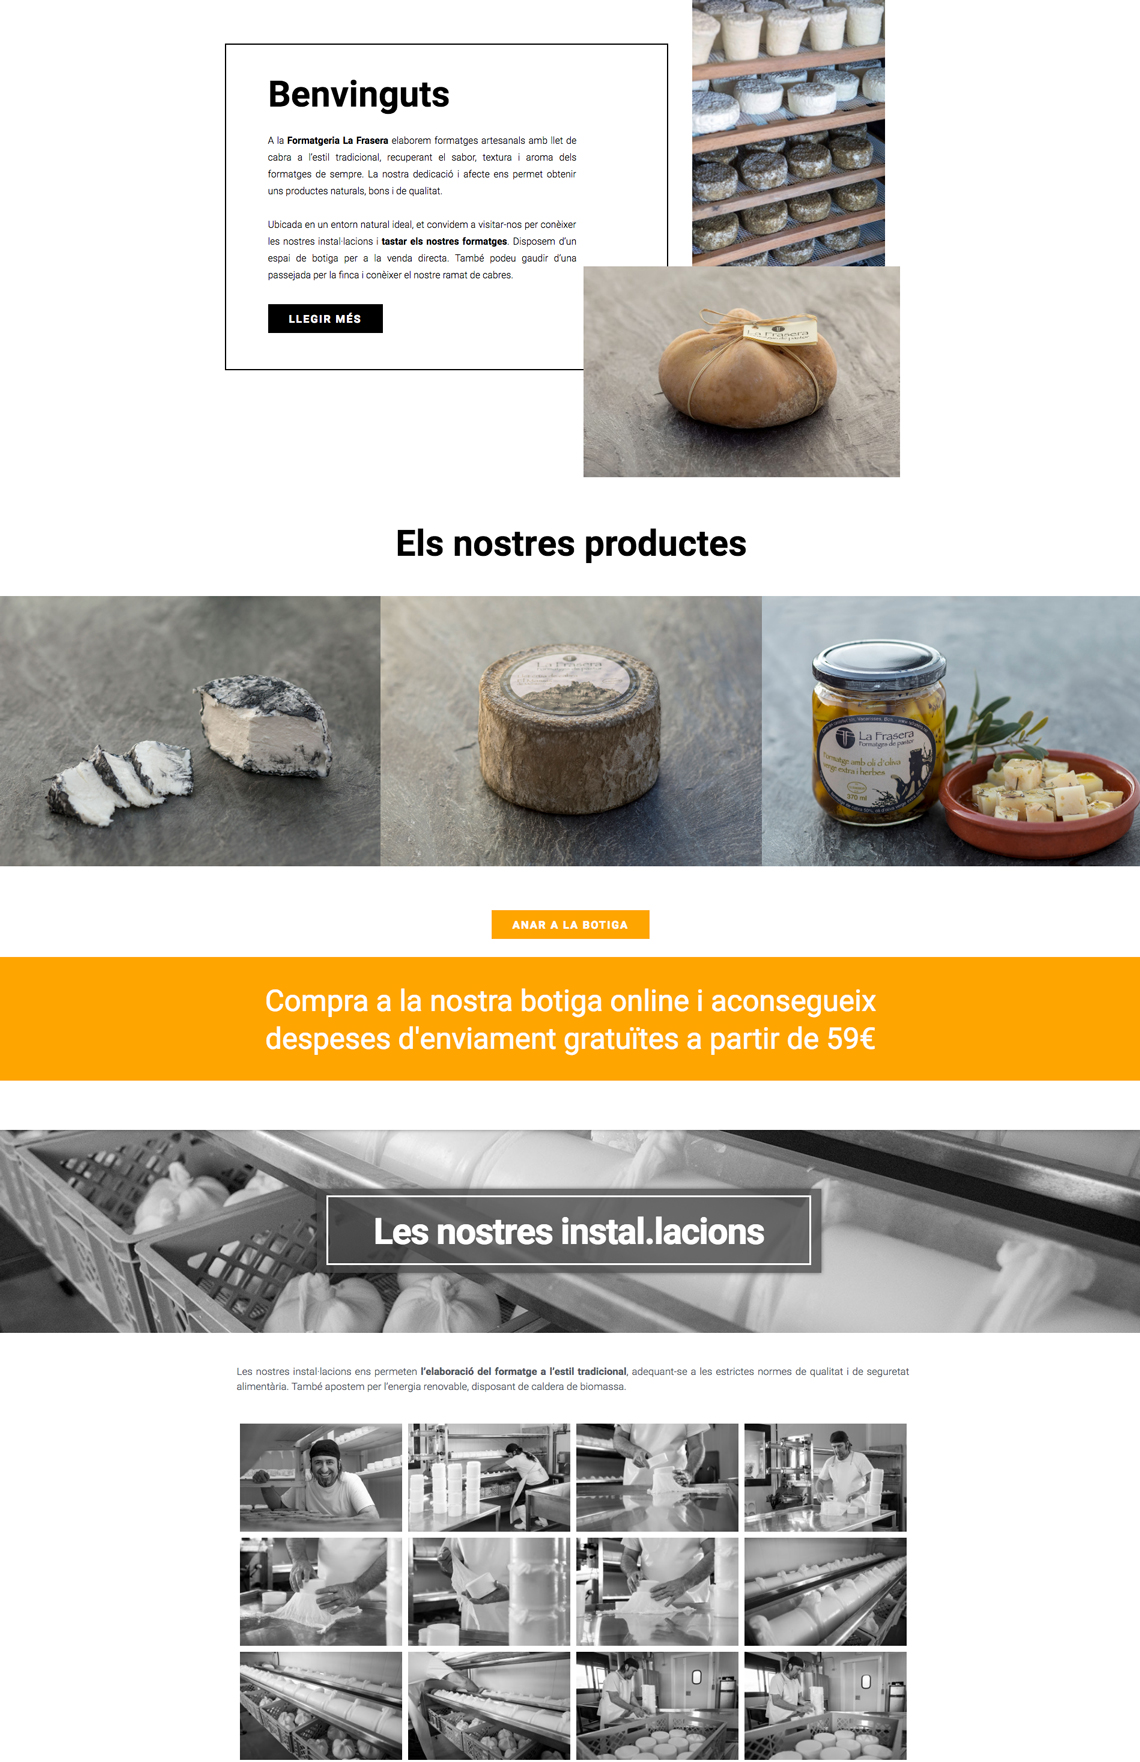 Brandall Agency Project La Frasera Website